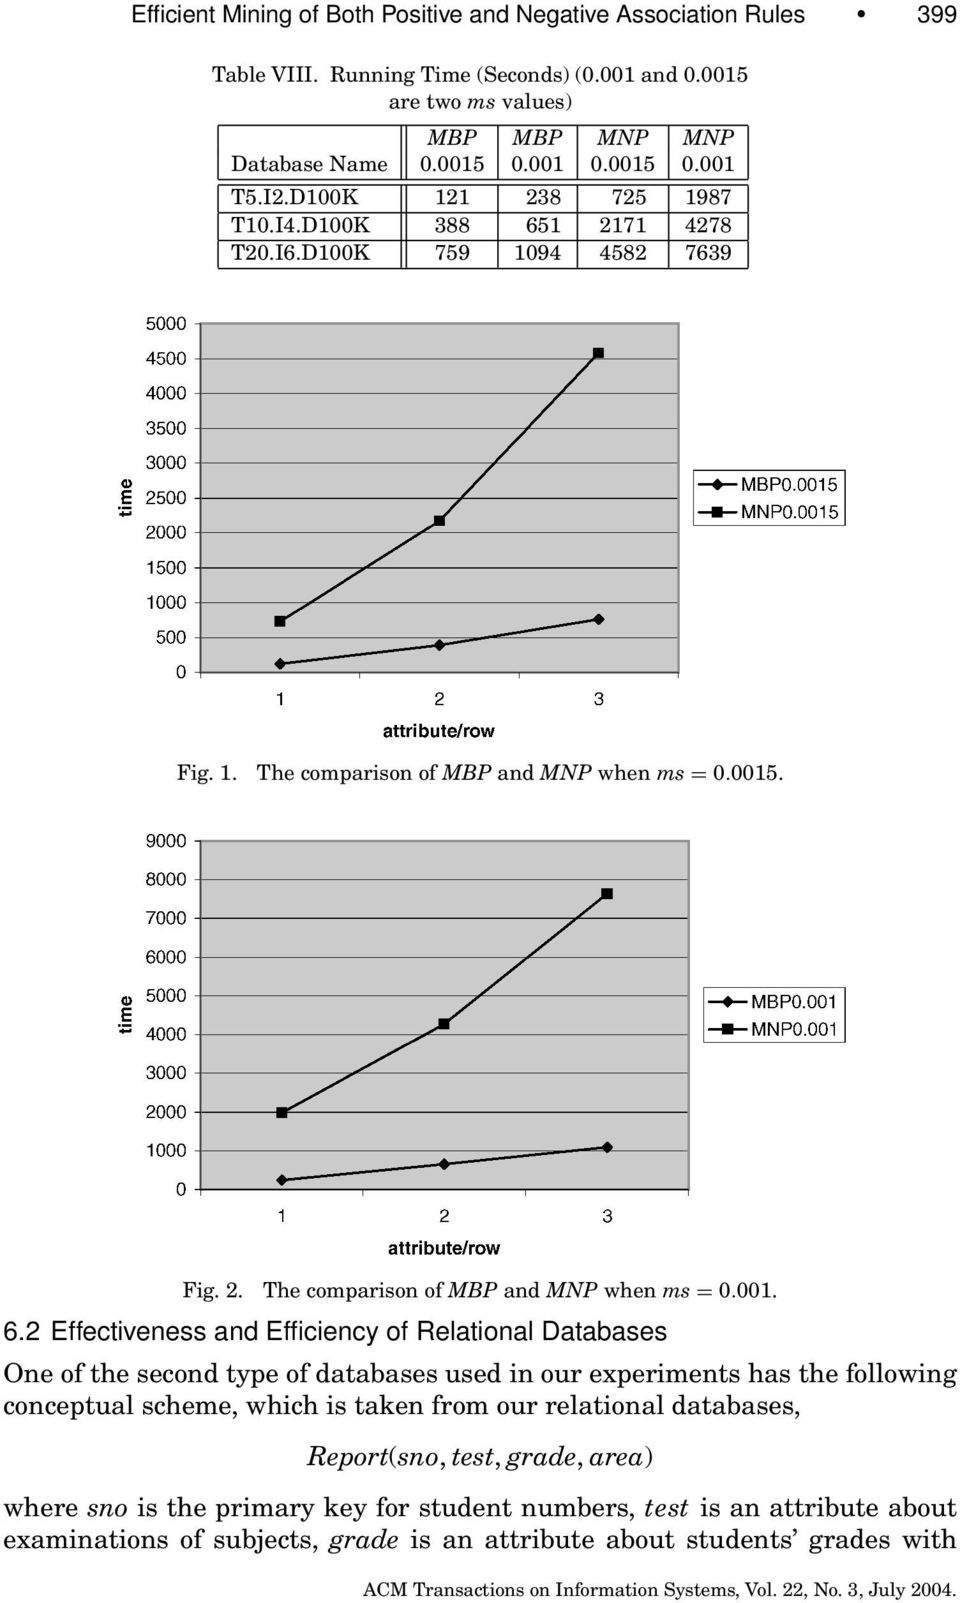 1 2171 4278 T20.I6.D100K 759 1094 4582 7639 Fig. 1. The comparison of MBP and MNP when ms = 0.0015. Fig. 2. The comparison of MBP and MNP when ms = 0.001. 6.